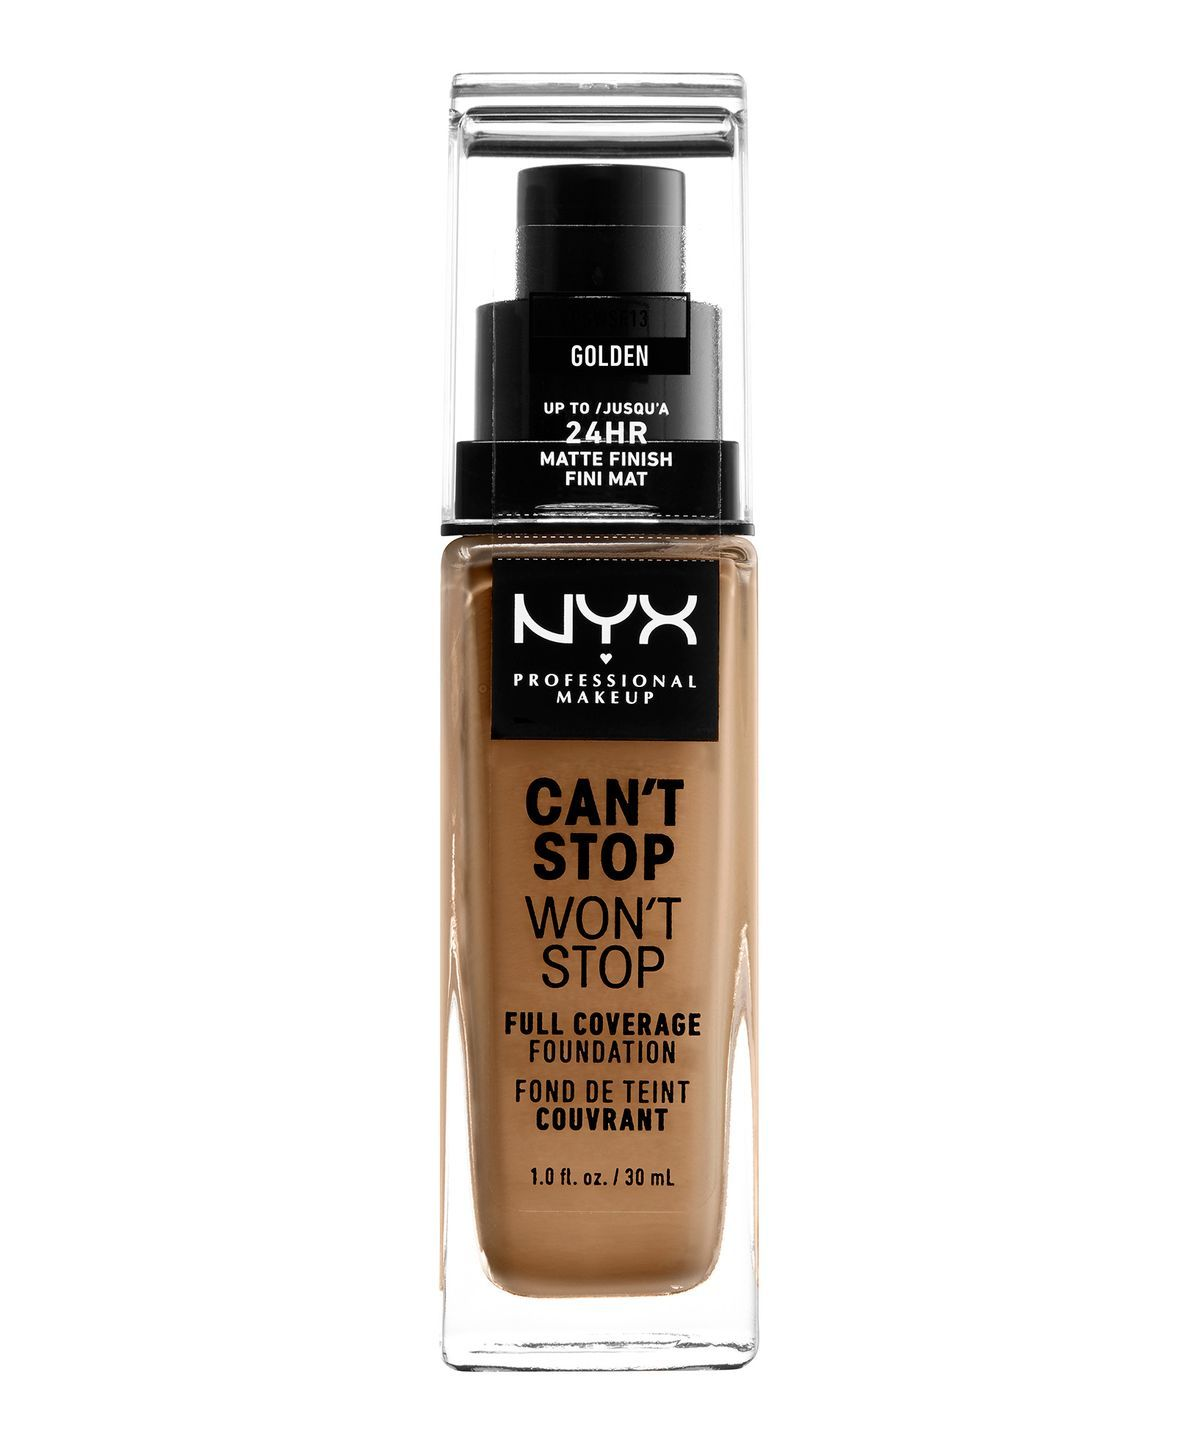 CANT STOP WONT STOP 24HR FOUNDATION GOLDEN - NYX PROFESSIONAL MAKEUP